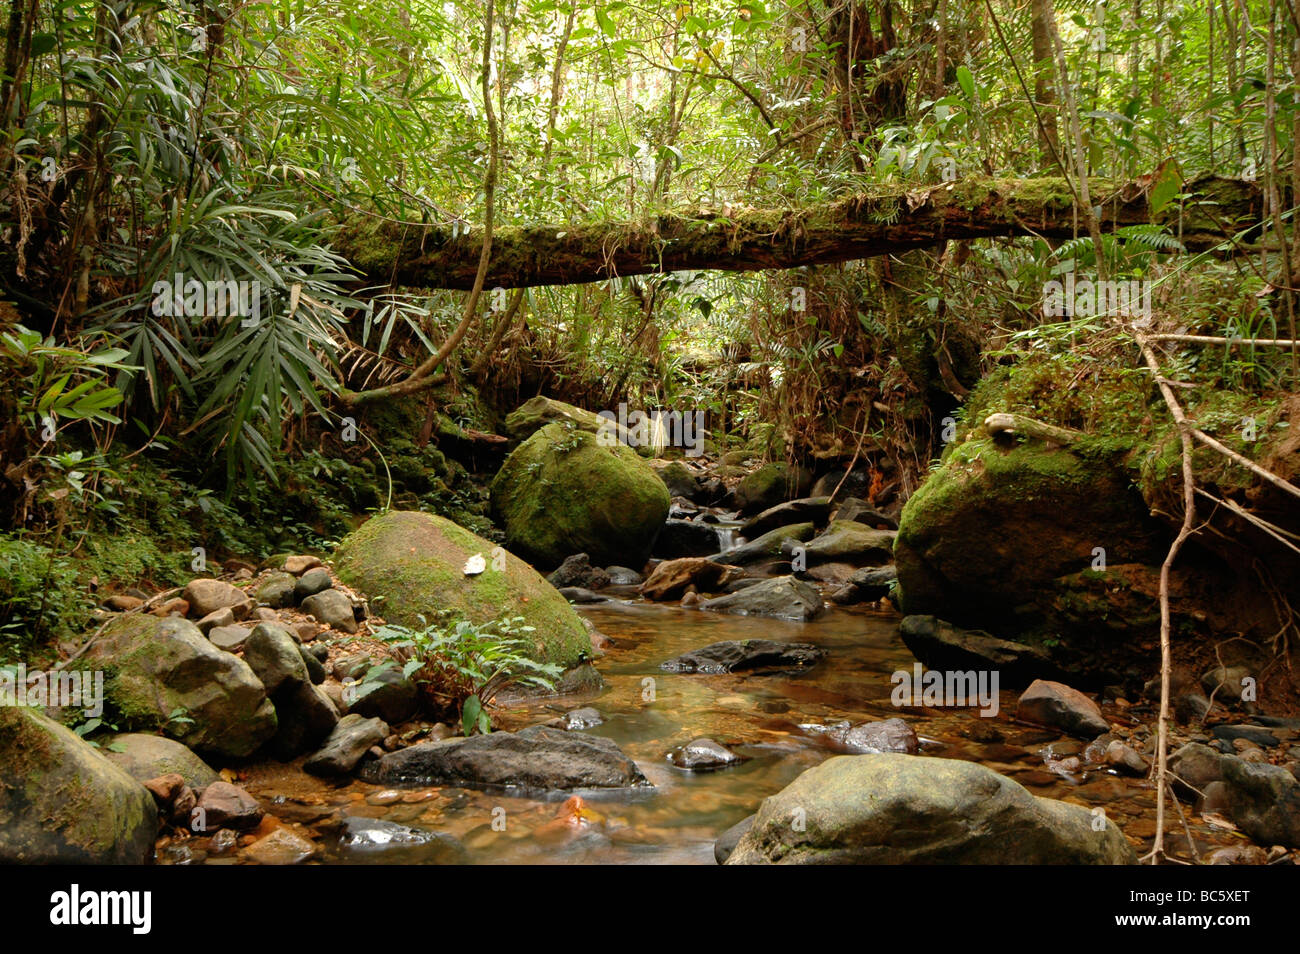 Forest Stream  in Mount Kinabalu national park on the island of Borneo in Malaysia - Stock Image